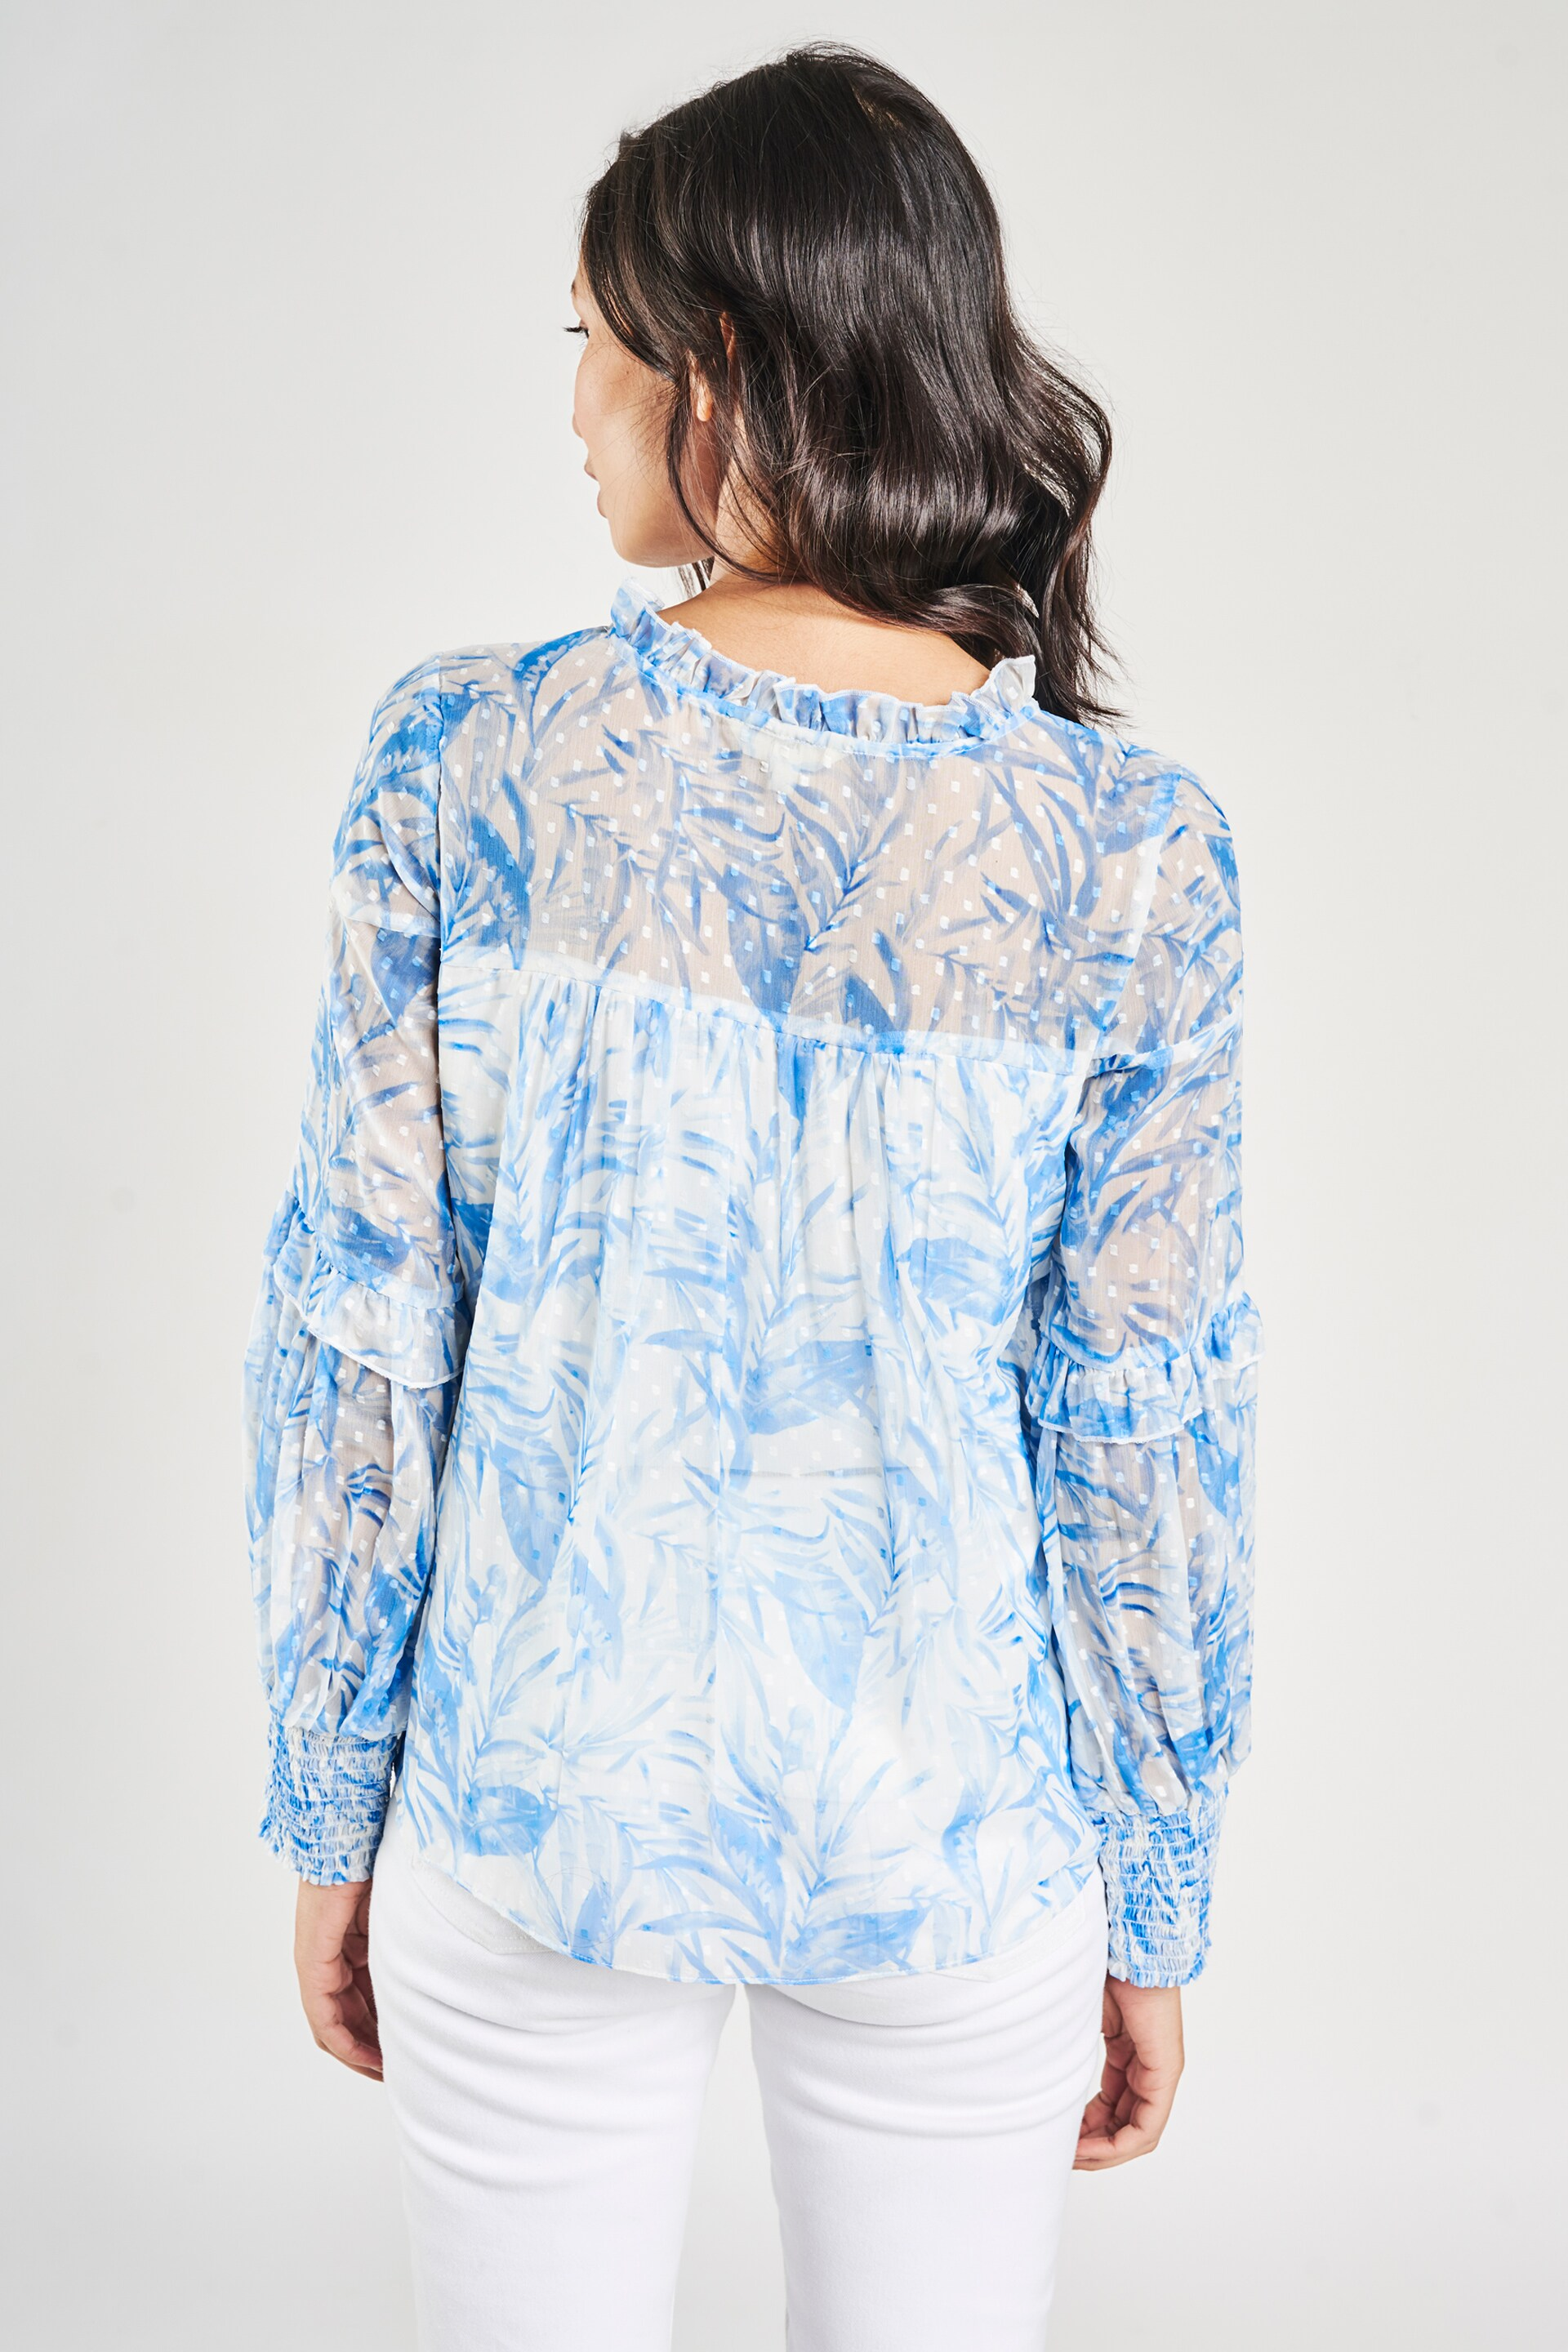 AND   Blue Floral Printed Peplum Top